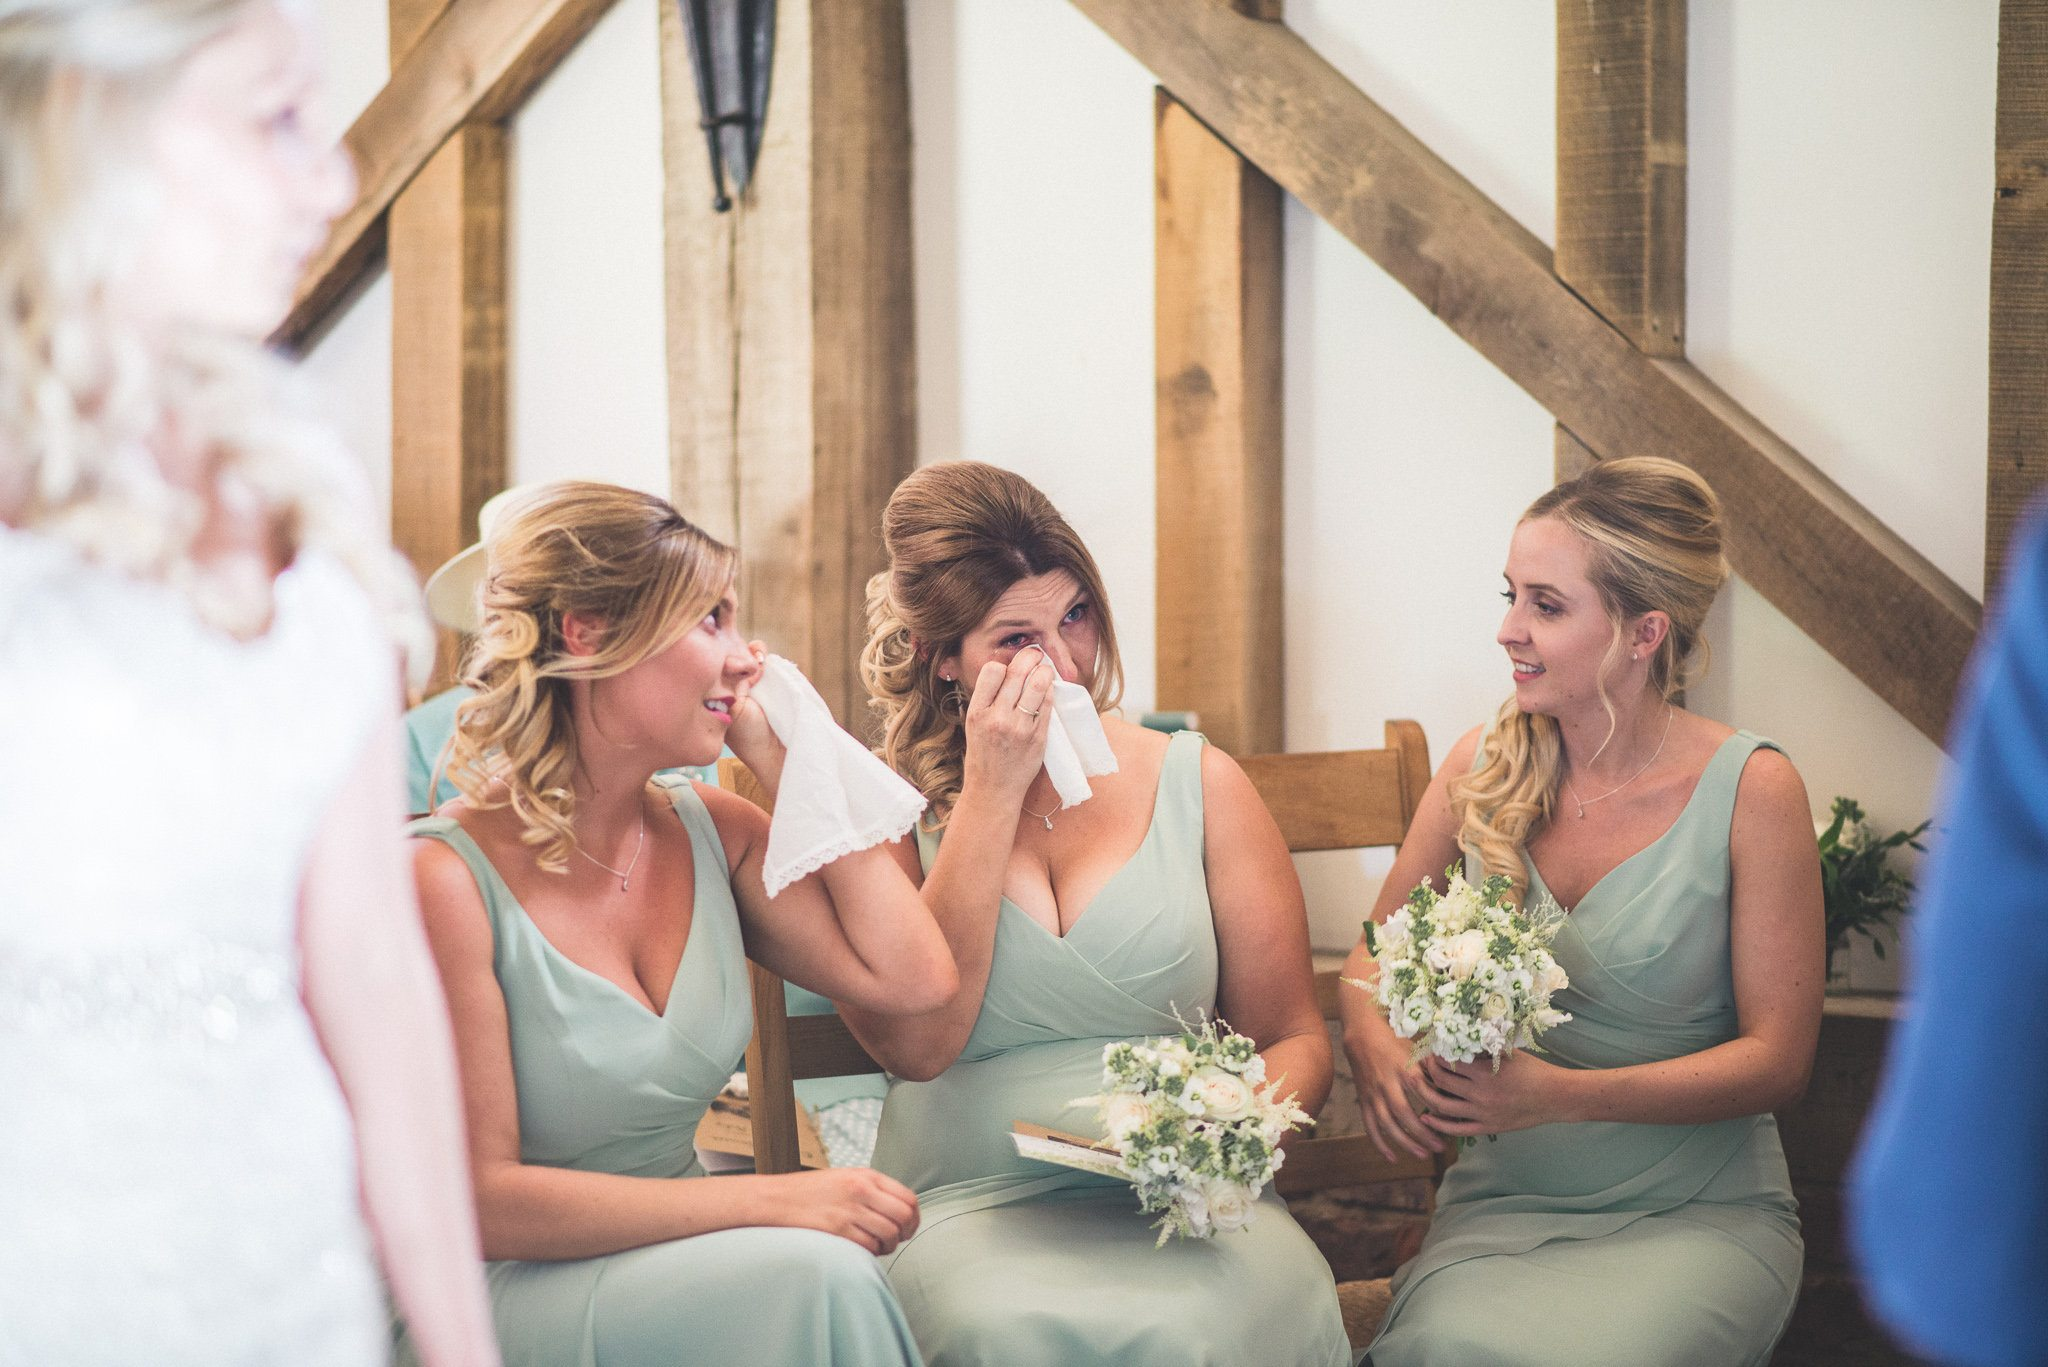 Three bridesmaids in mint green dresses wipe their eyes at a barn wedding